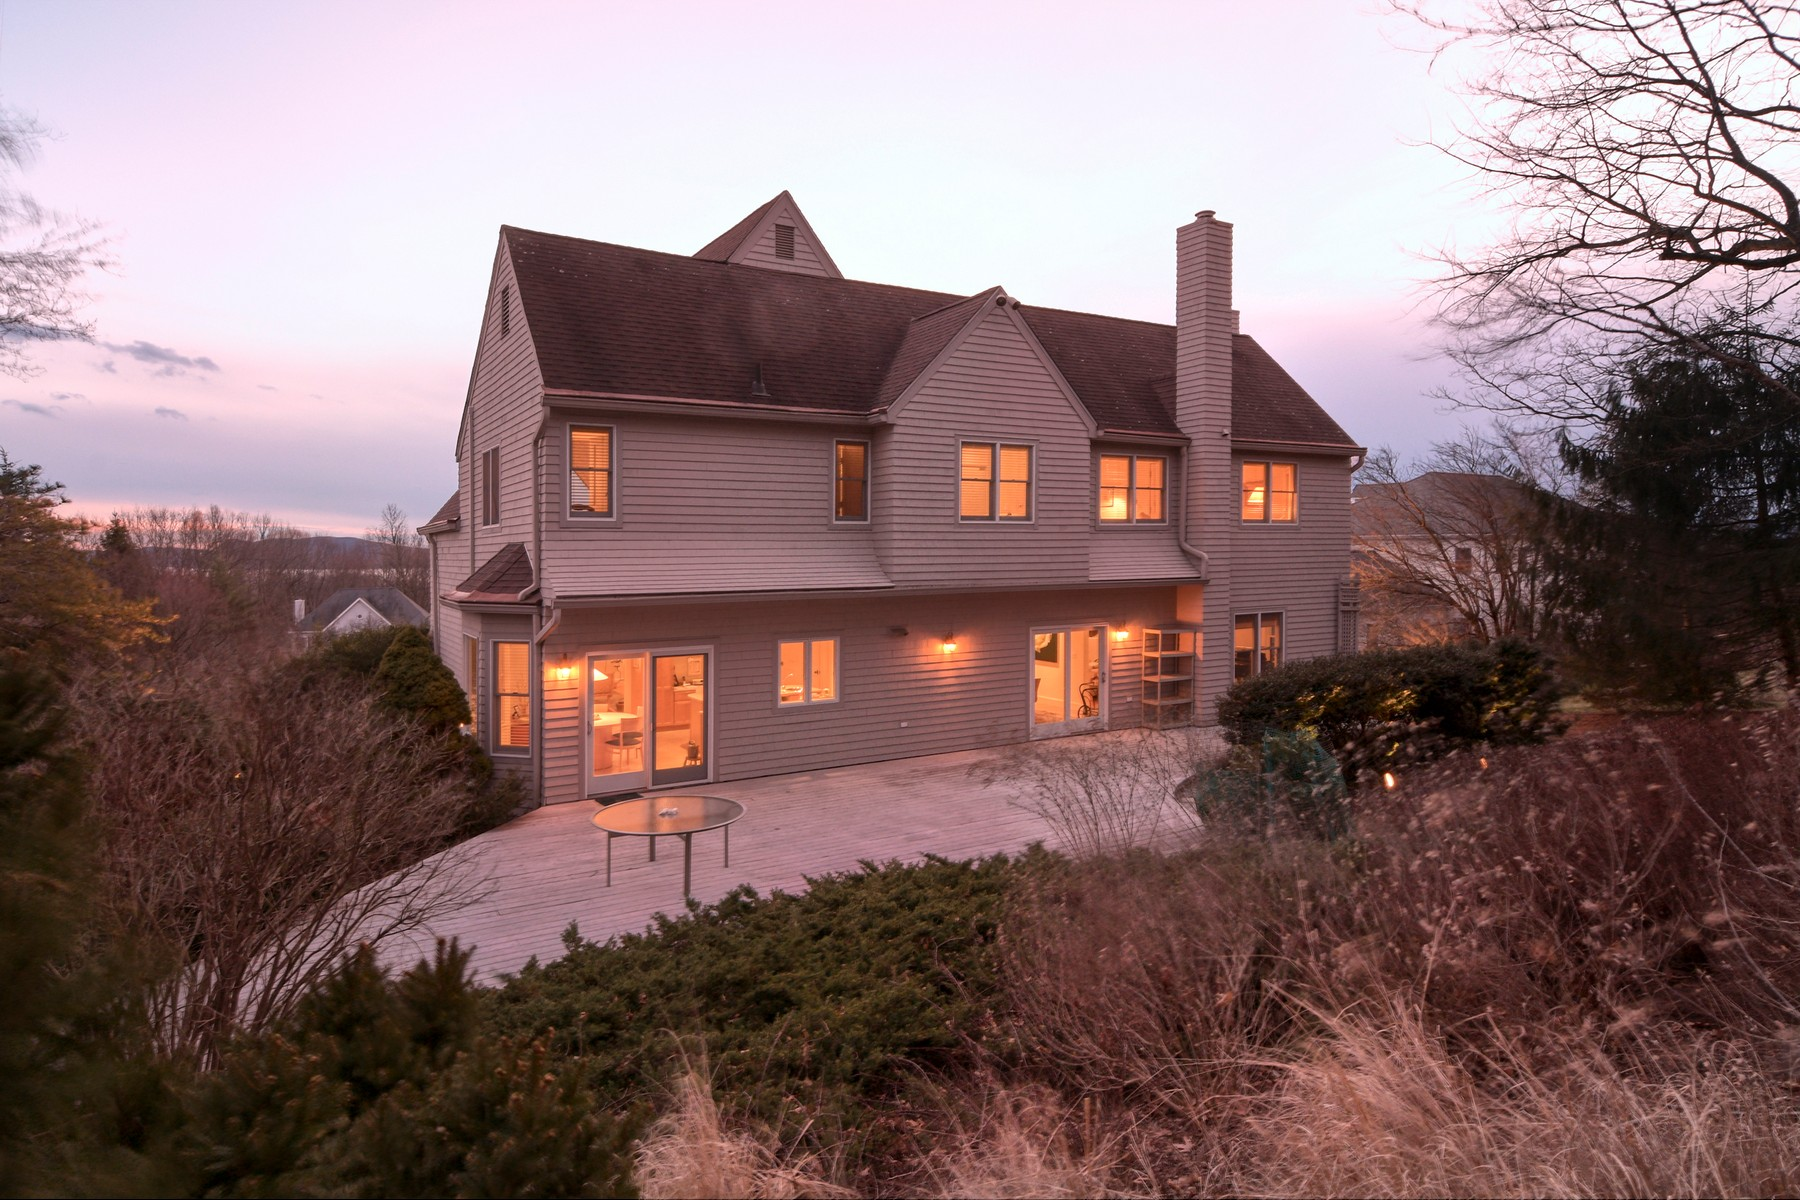 Single Family Homes for Active at Incredible Views 7 Waterview Drive Ossining, New York 10562 United States